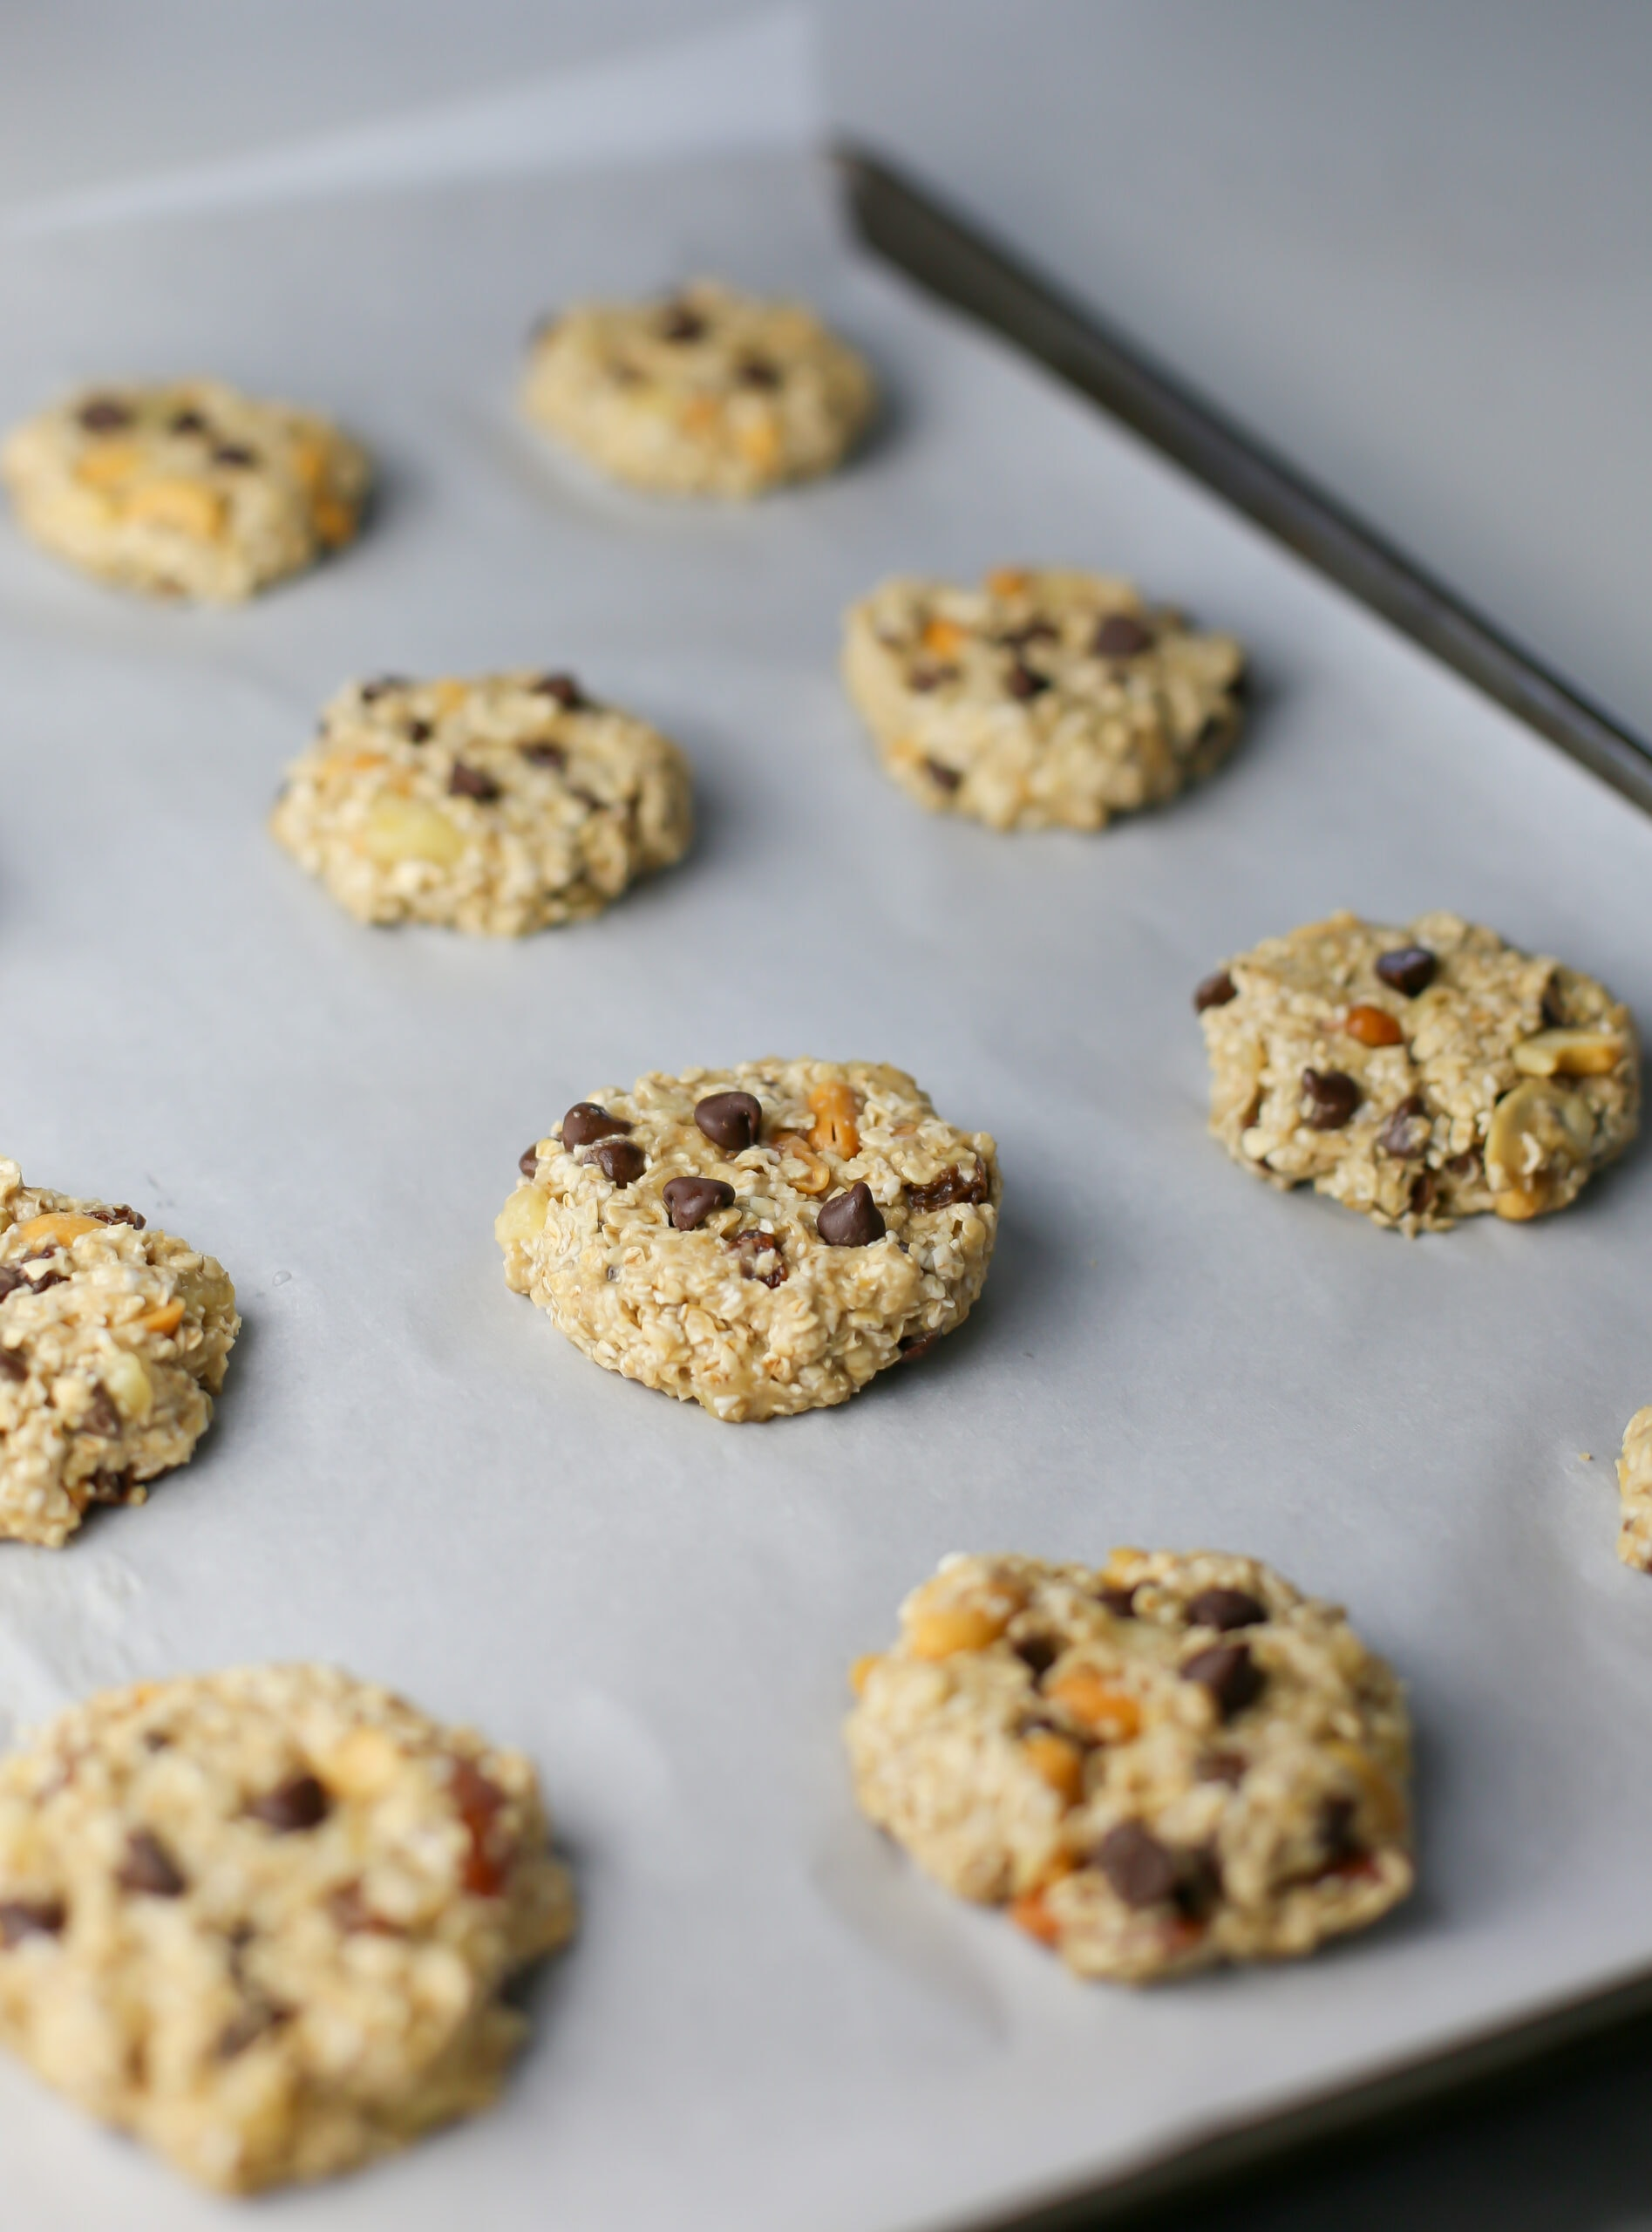 Unbaked trail mix cookies on a parchment paper lined baking sheet.